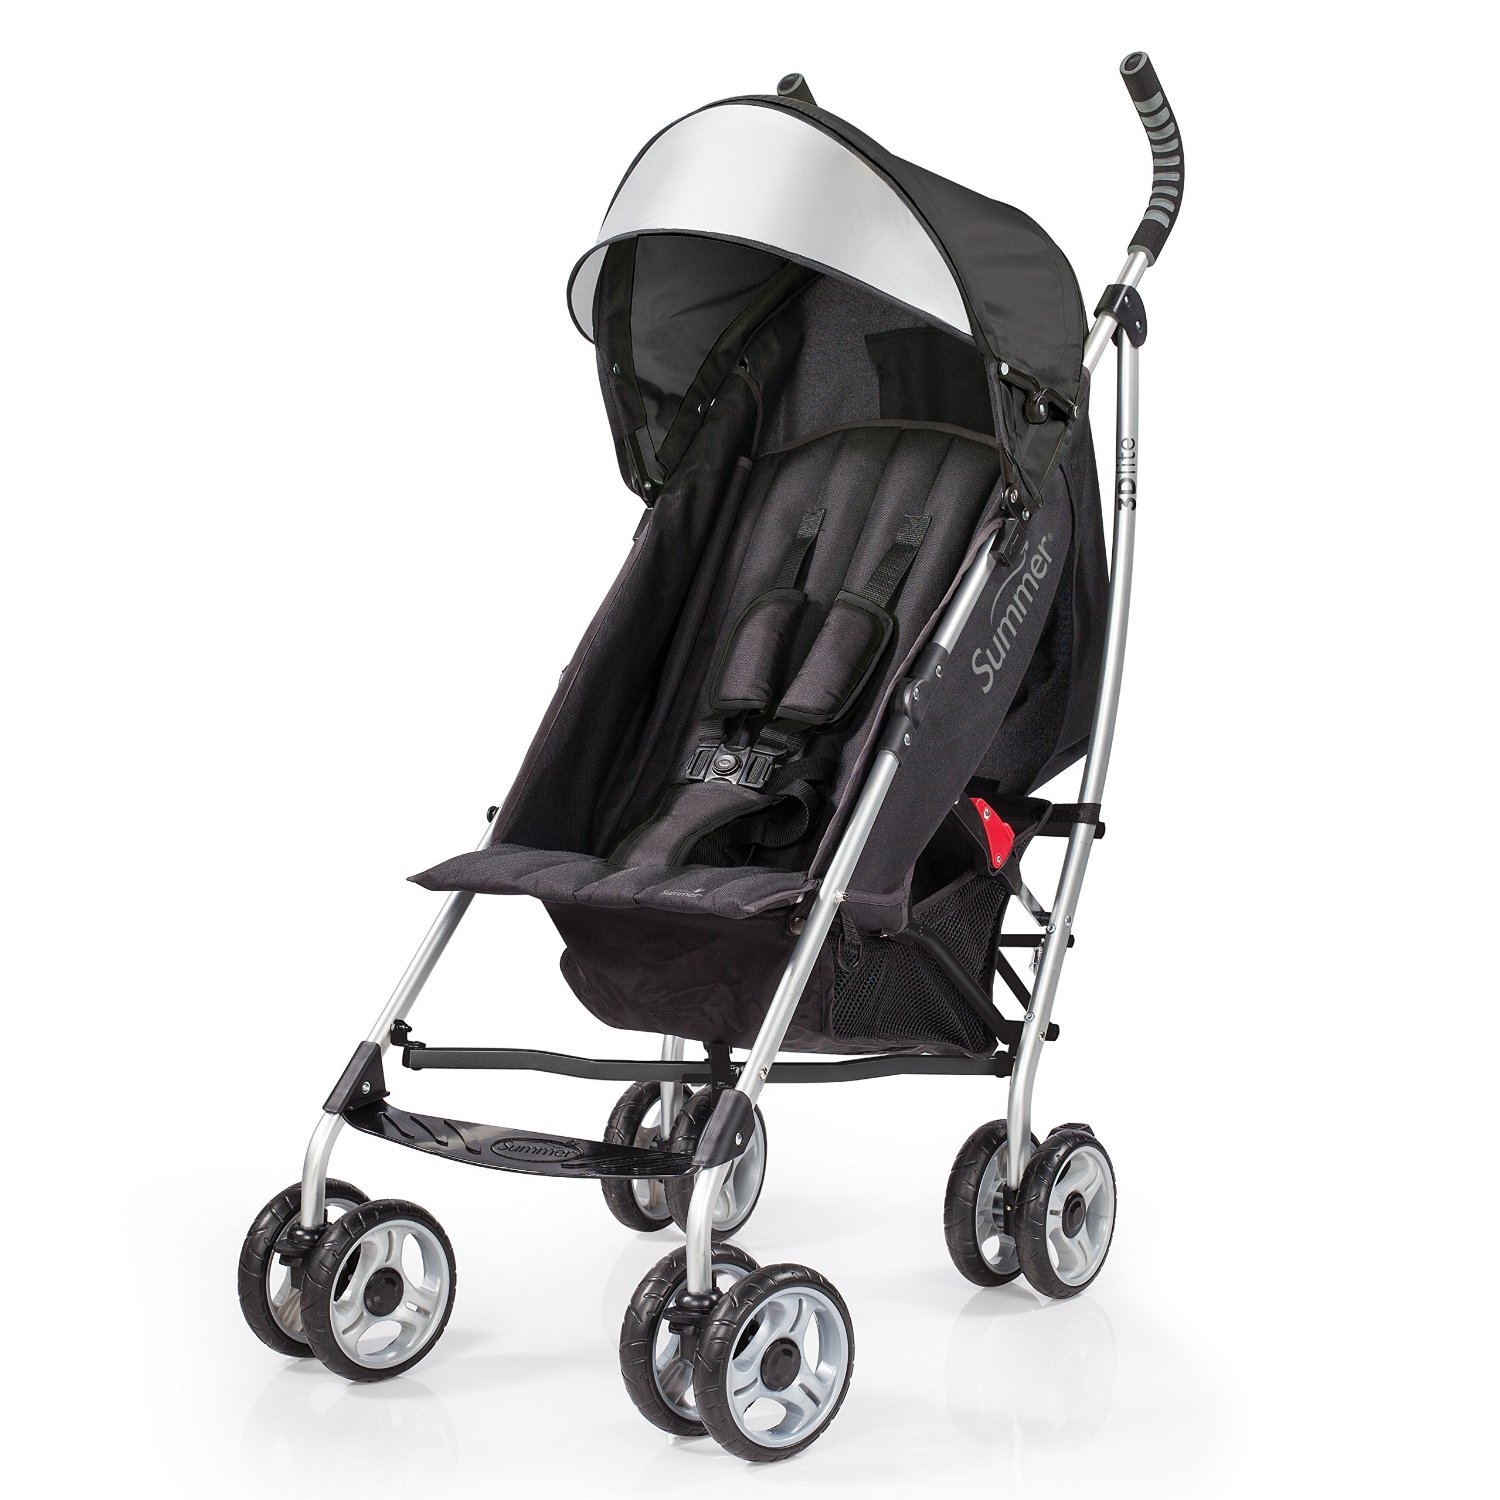 Top 10 Best Baby Strollers 2019 Reviews Of Safe